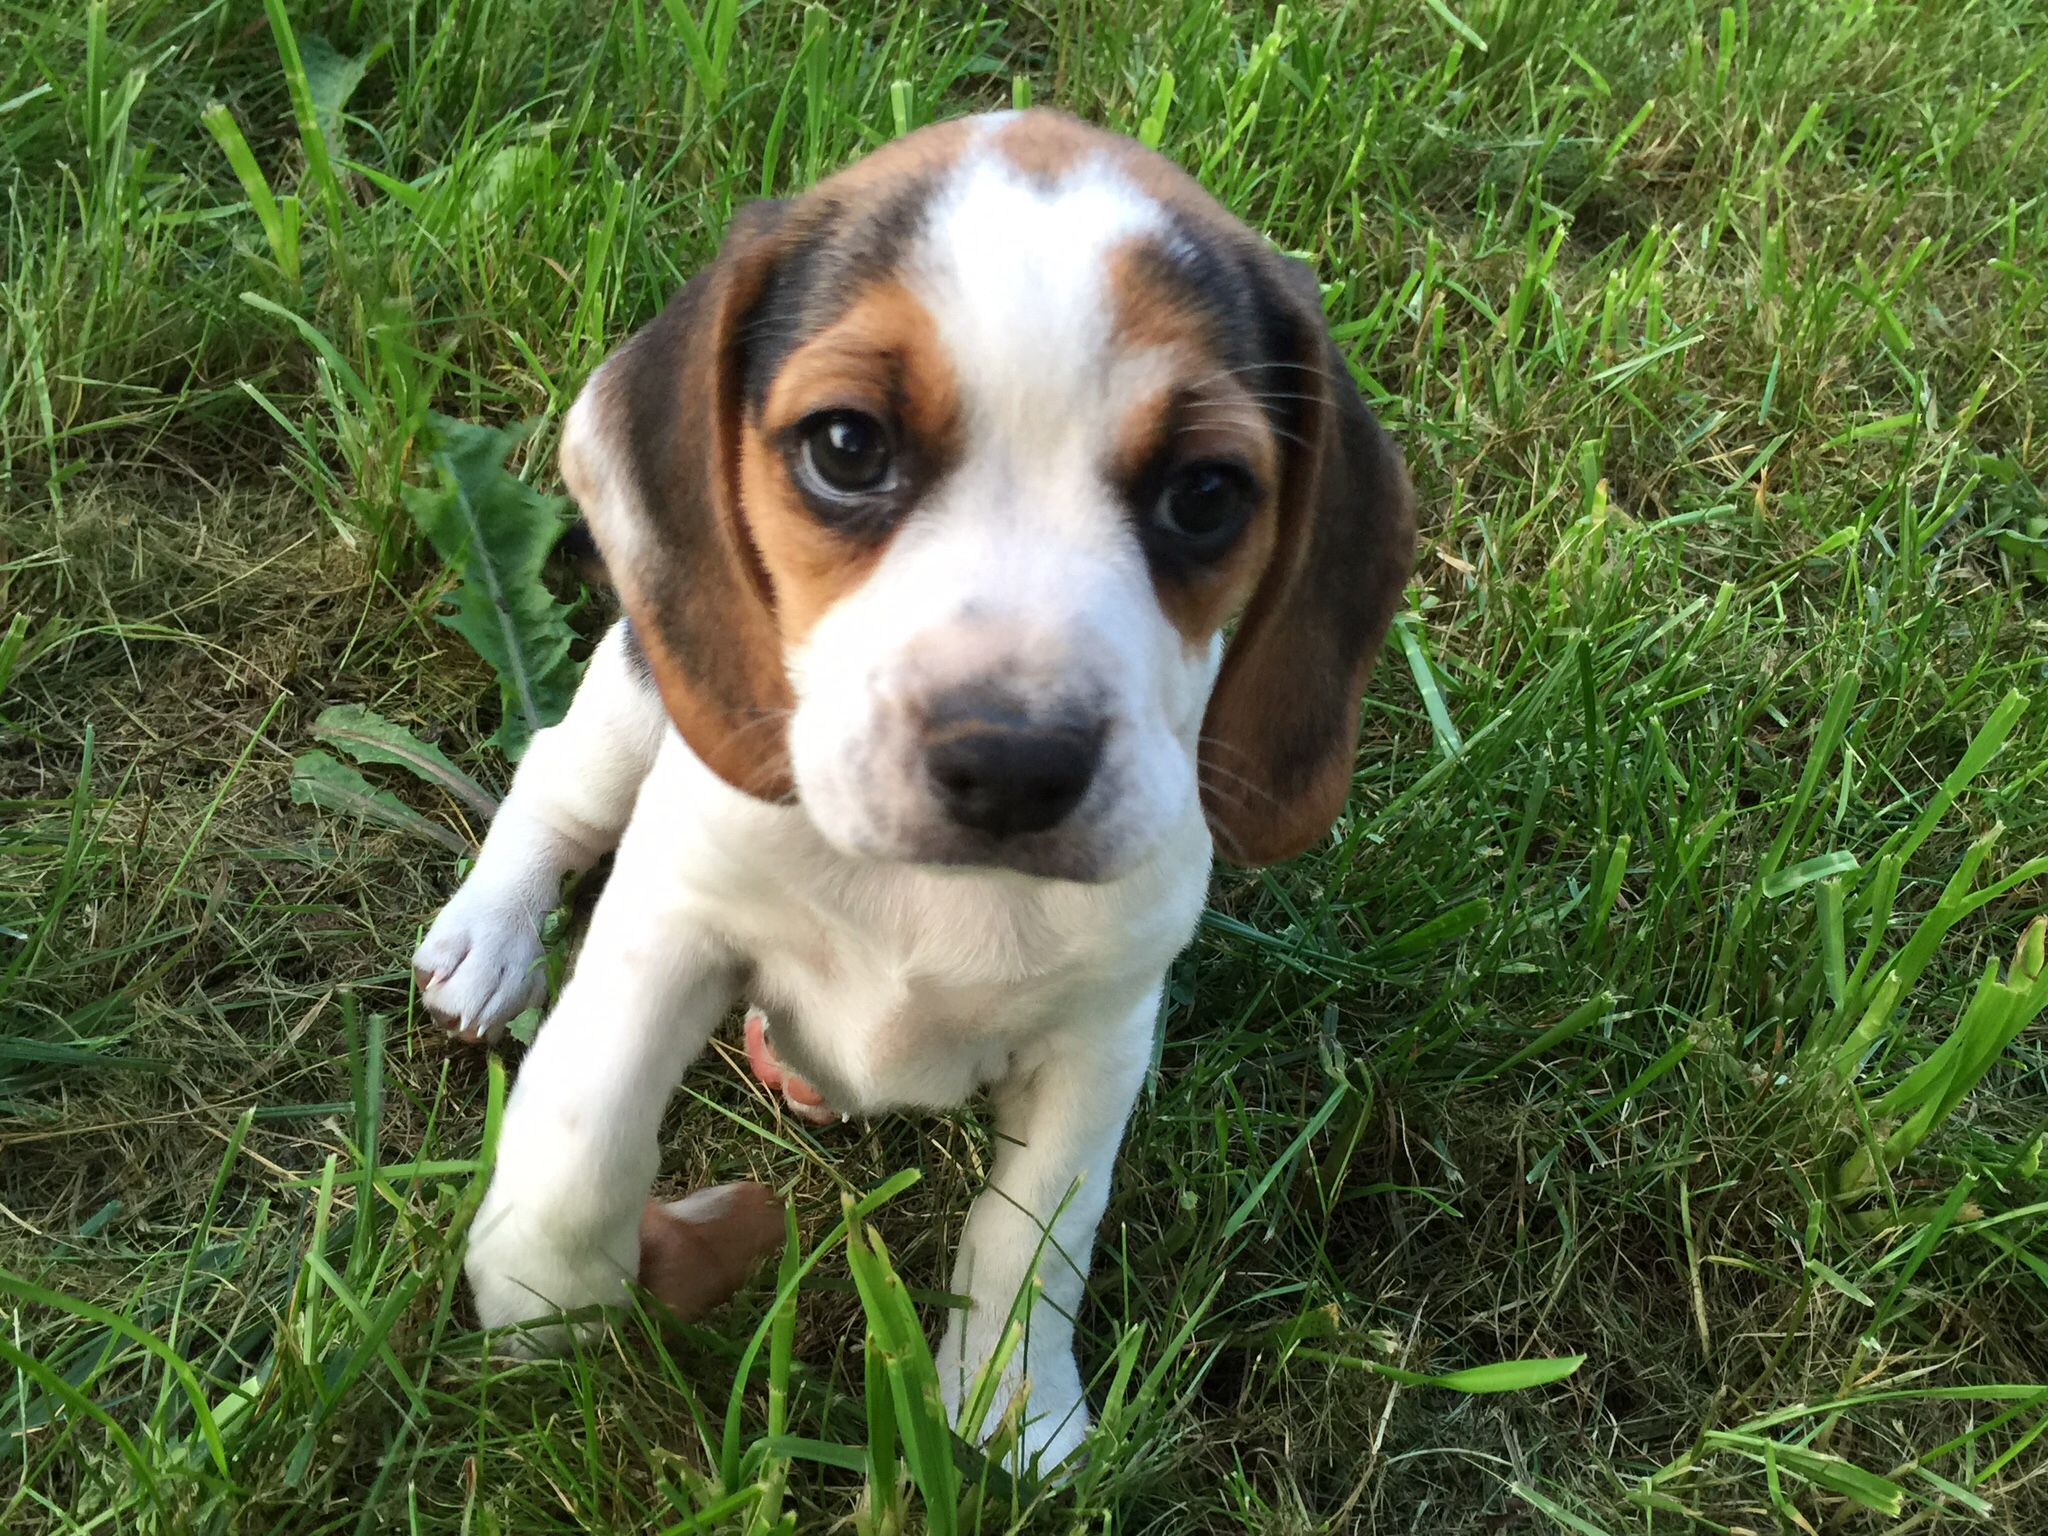 Www Pocketbeagleny Com Mini Beagle Puppy Pocket Beagles Beagle